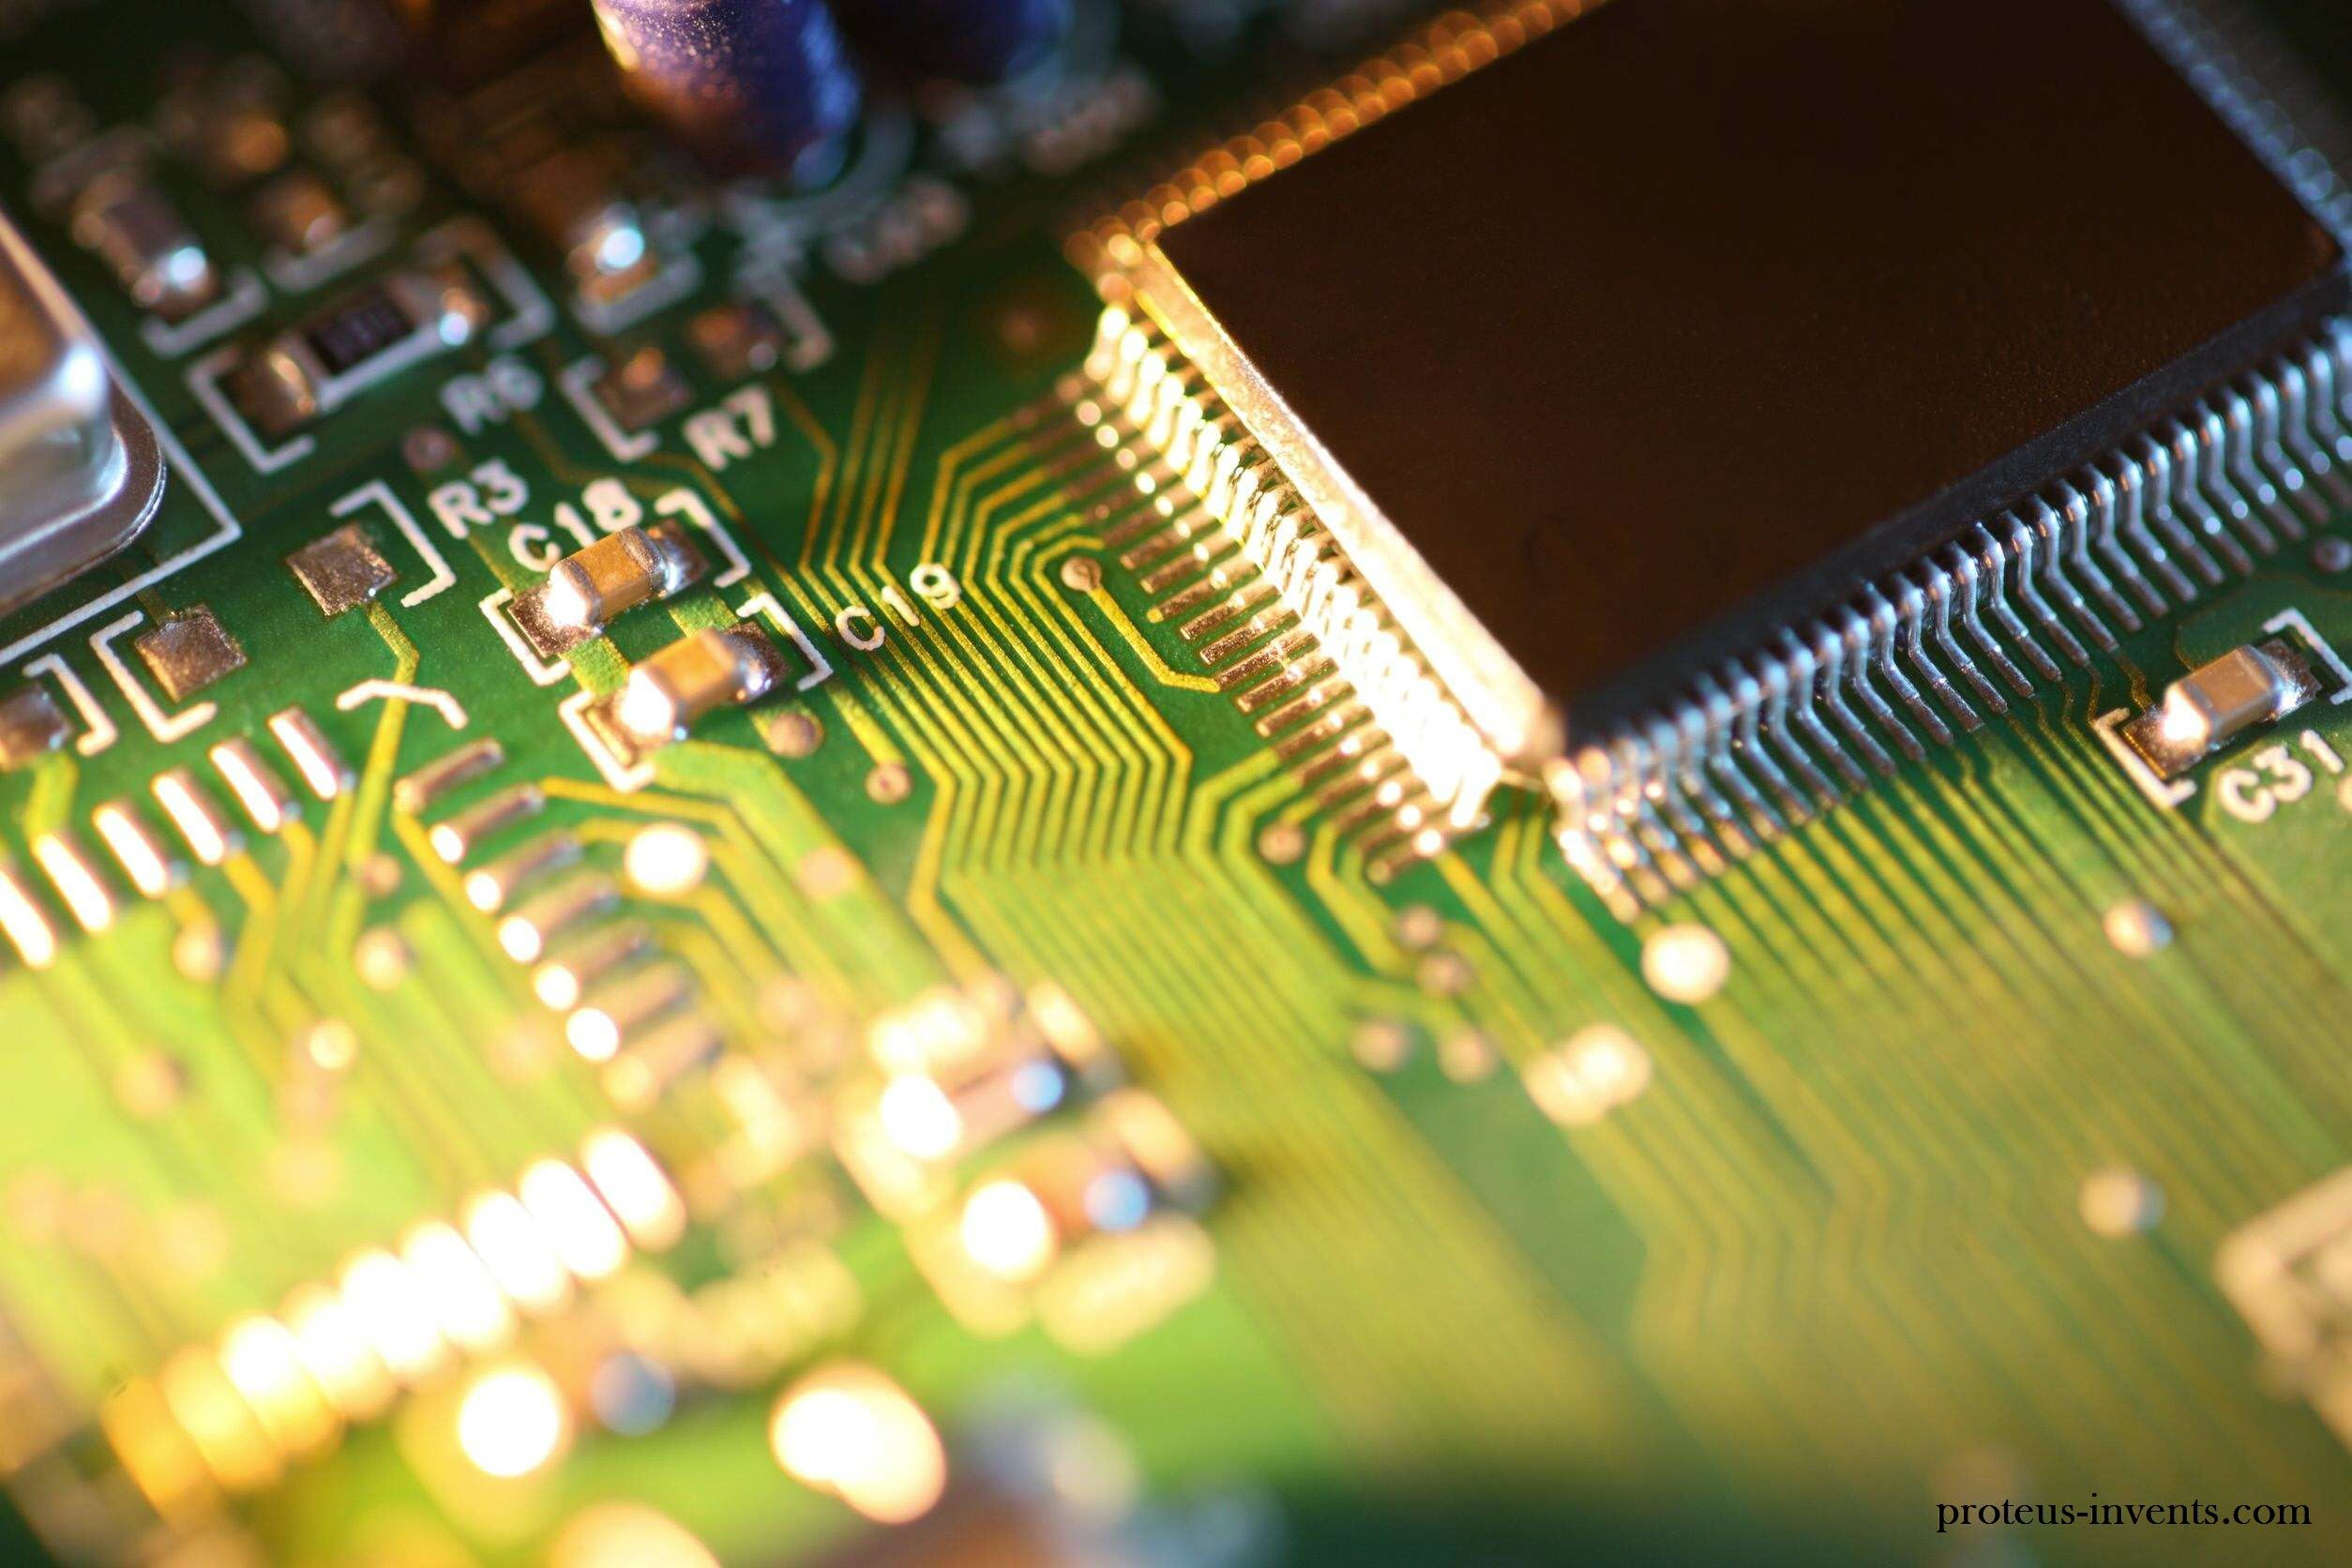 Custom #Embedded System #design services : Proteus Invents